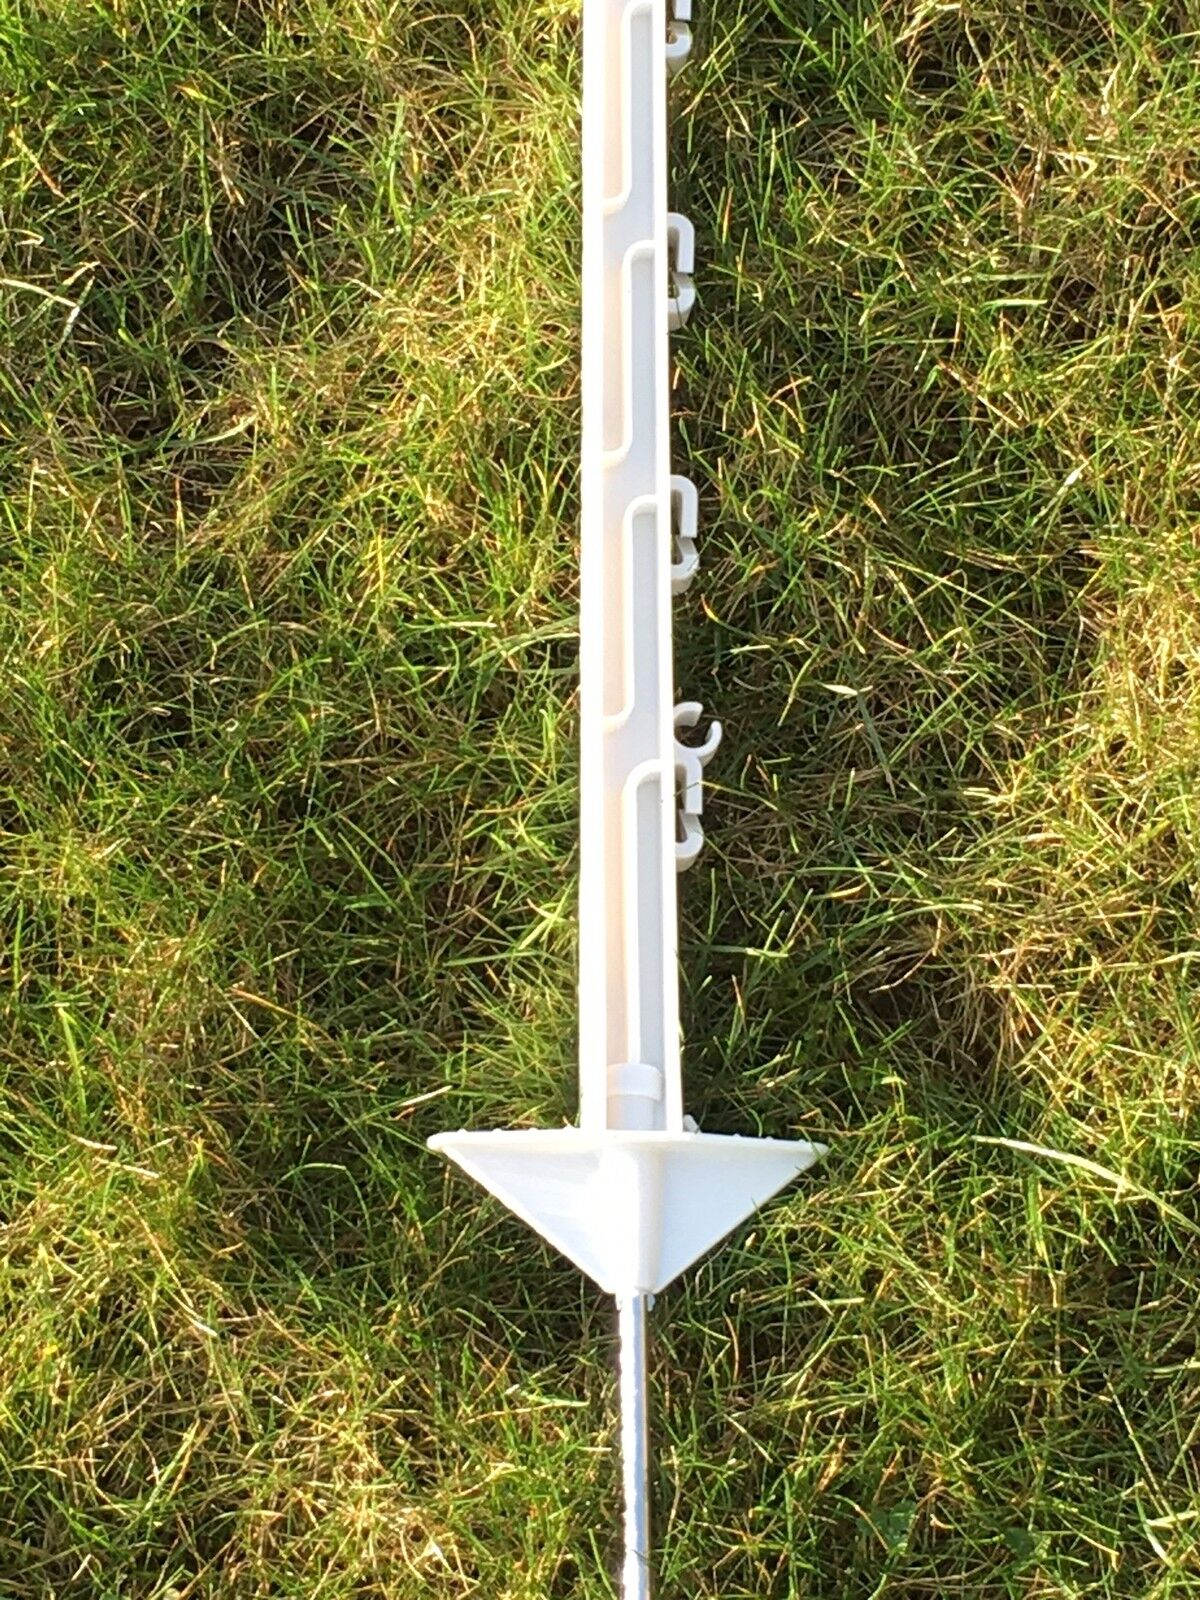 FENCEMAN 20 X WHITE 5FT POLY POSTS - HORSE POST 150cm Tall Electric Fence 4ft 6